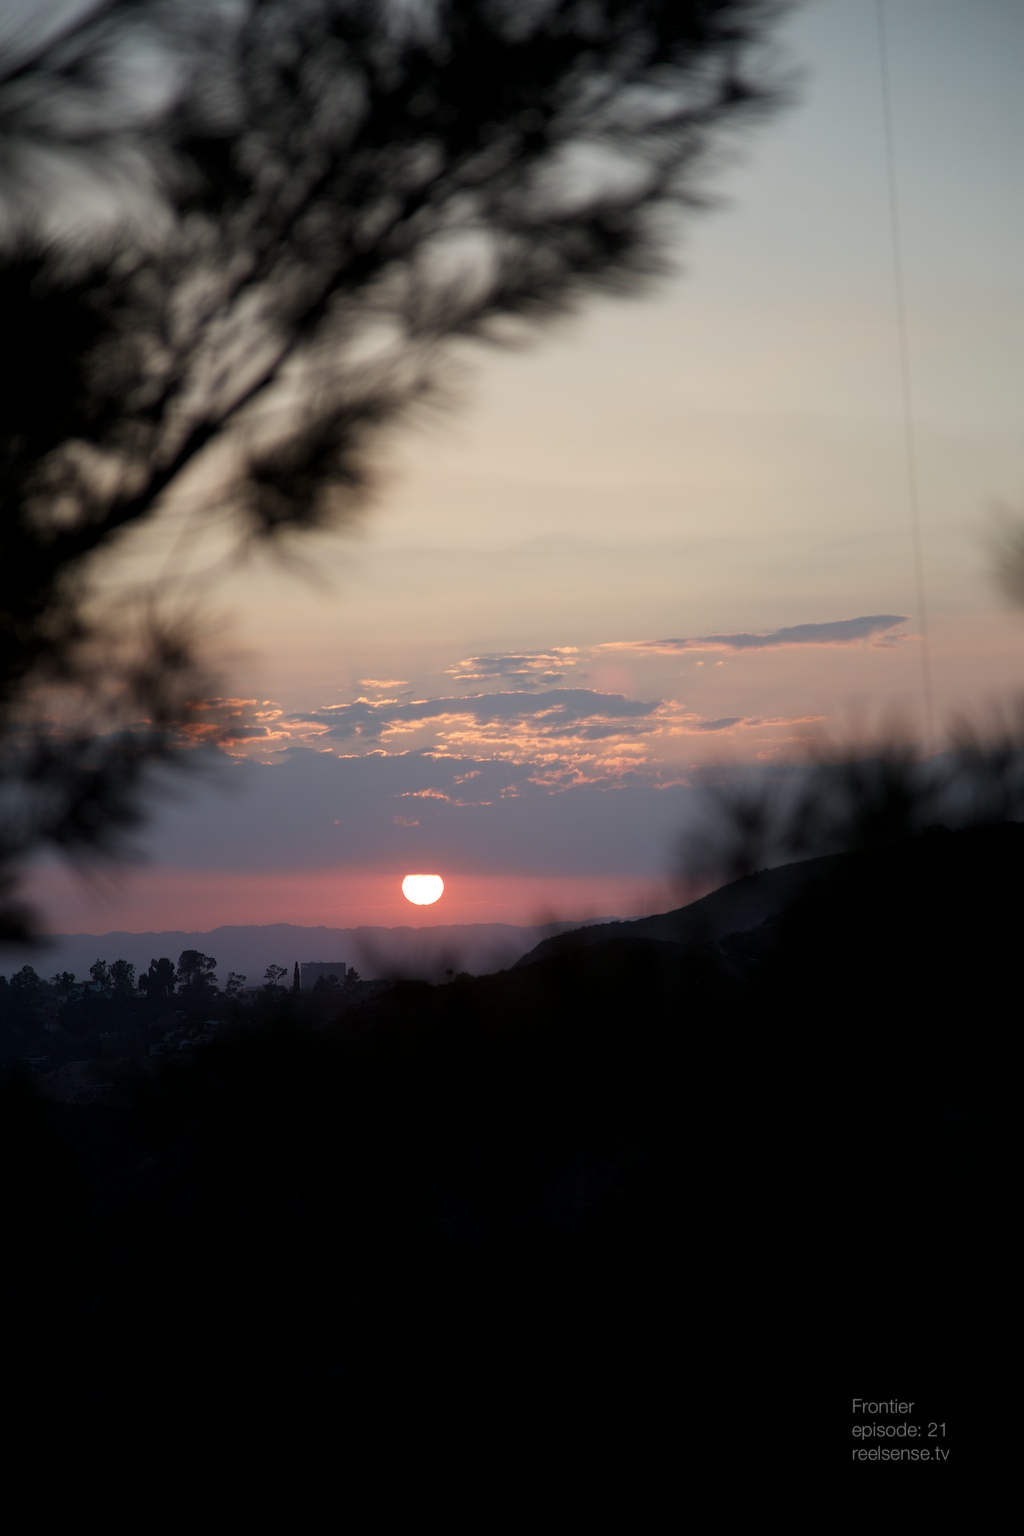 Griffith Observatory - Los Angeles - Sunset over LA